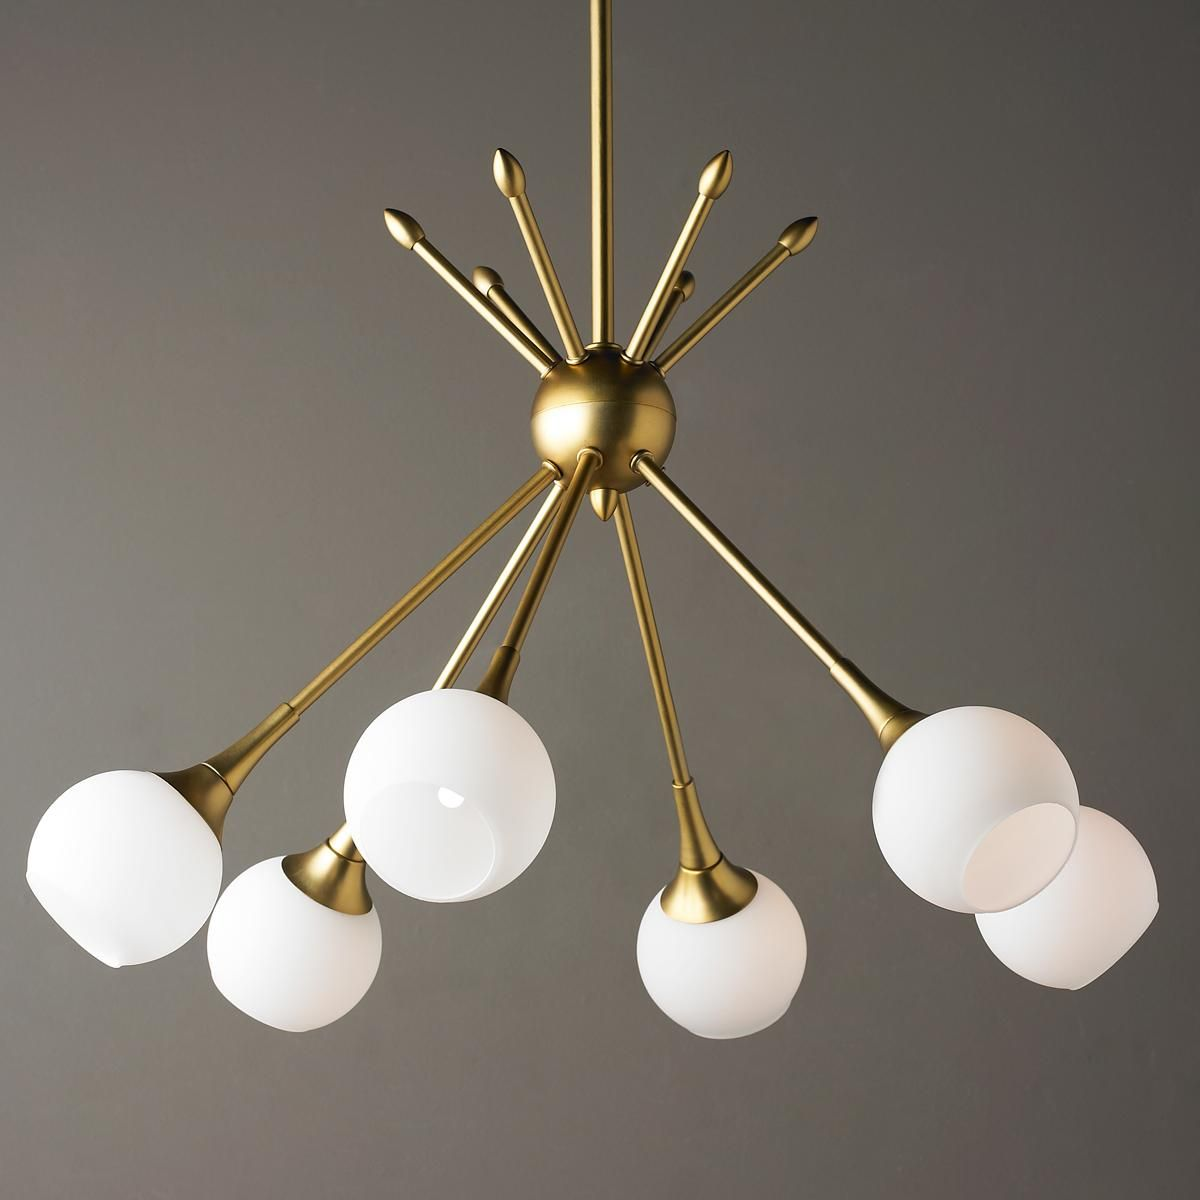 MidCentury Modern Mobile Chandelier 6 Lt Golden Brass Or Brushed Nickel Rods And Opal Glass Globes